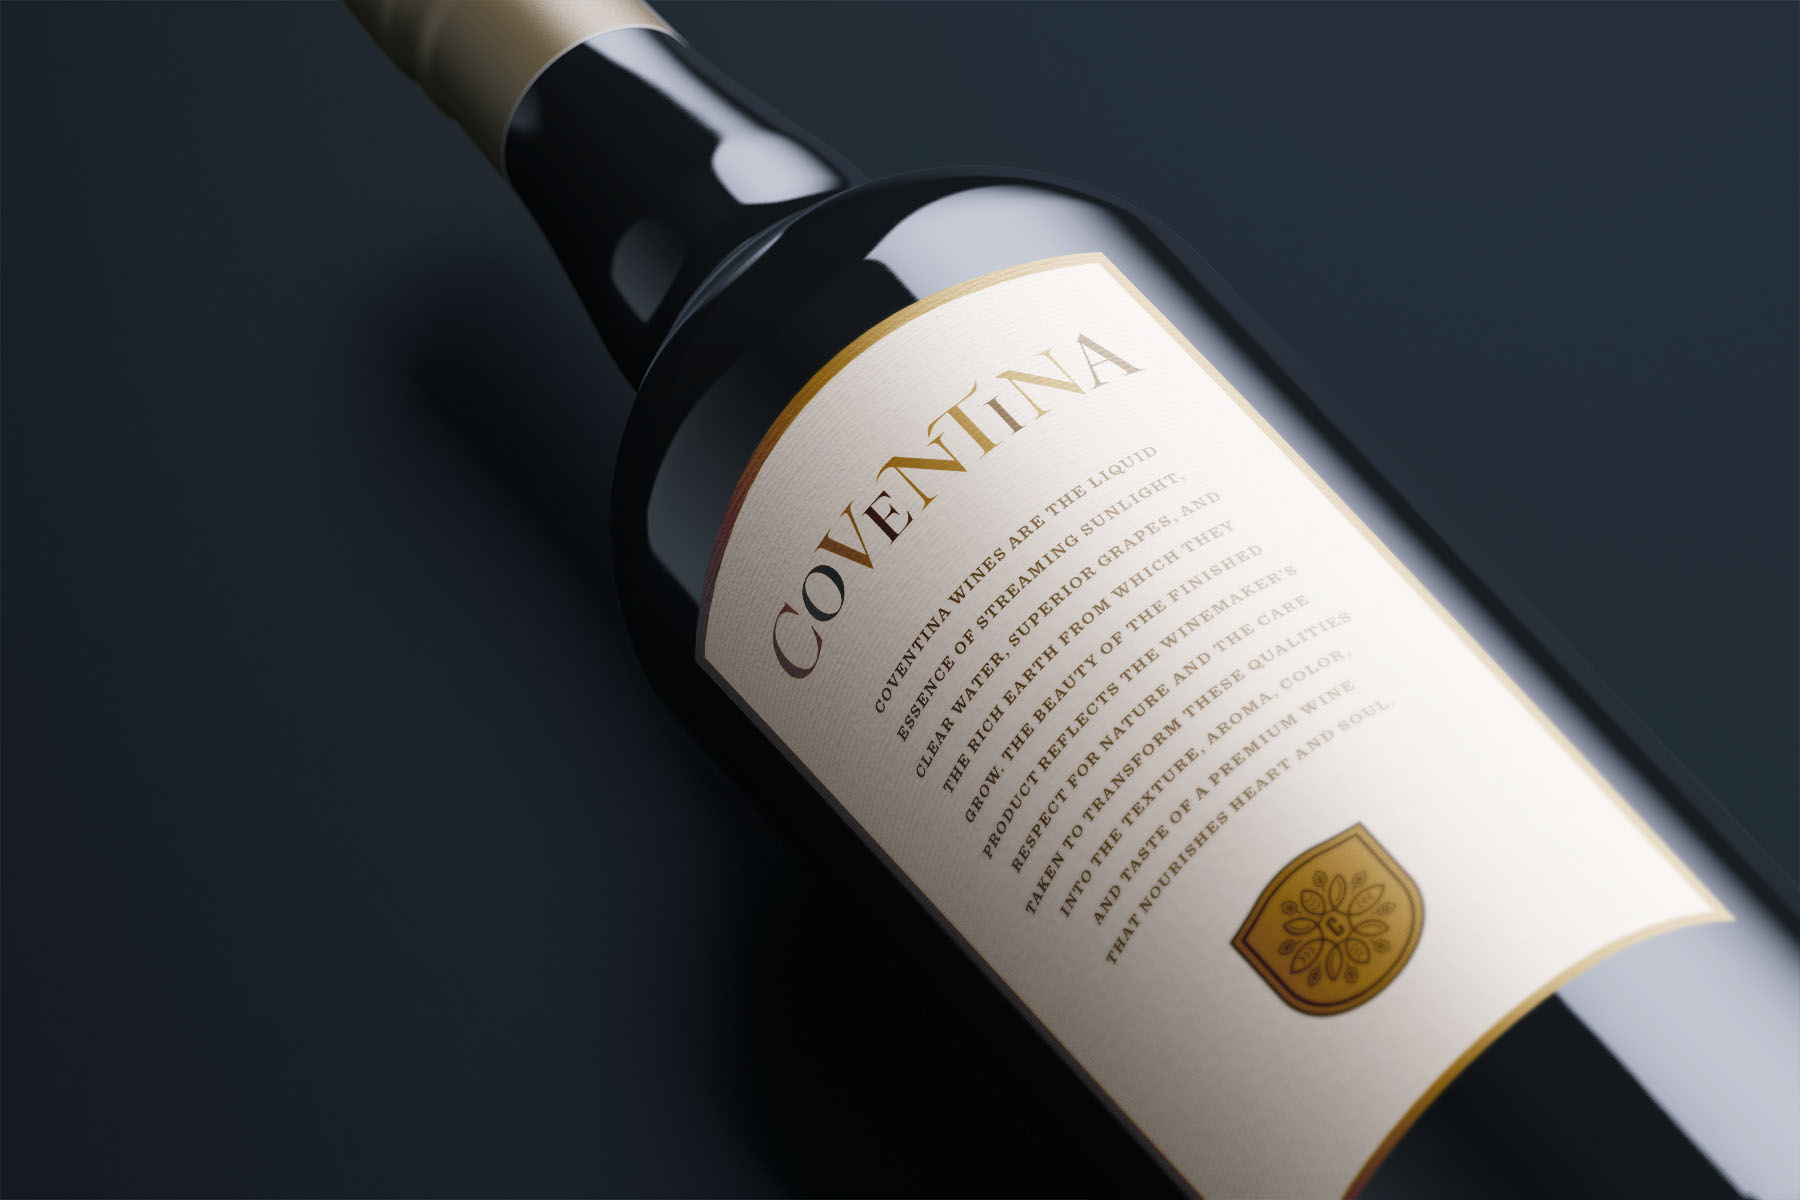 coventina_wine_bottle_001.jpg